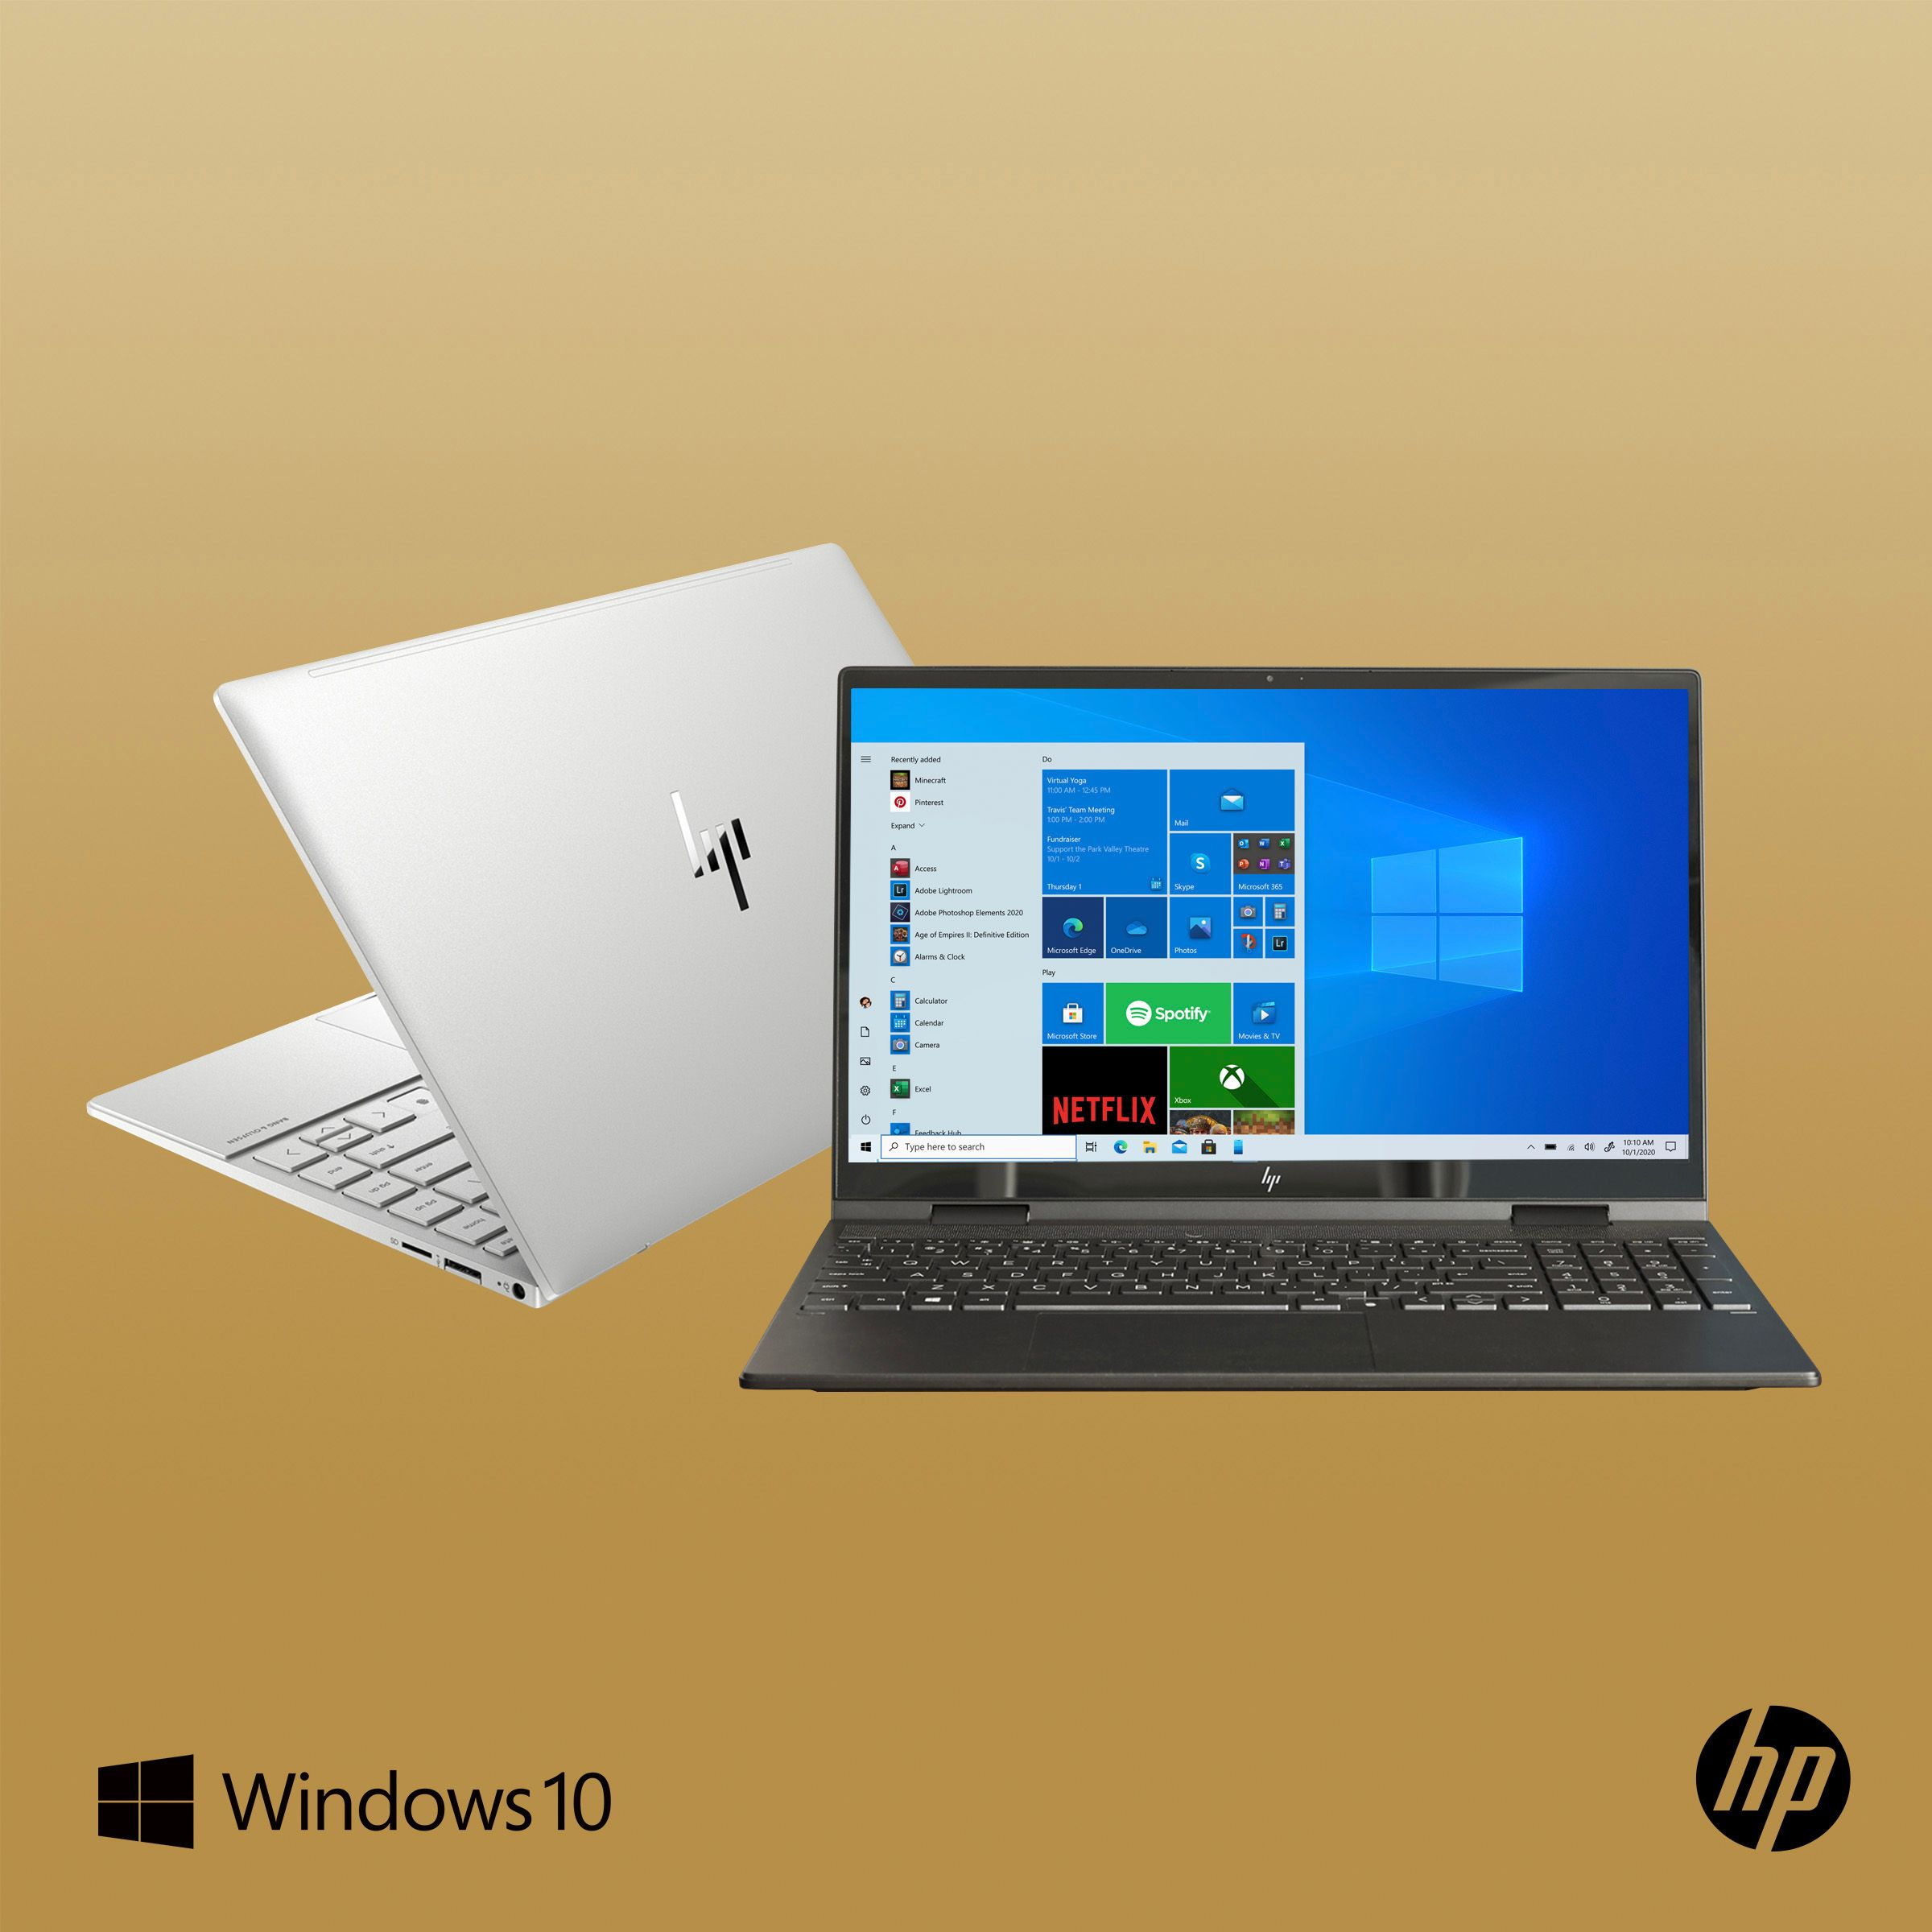 HP ENVY Range - Discover the best of HP and Windows 10.